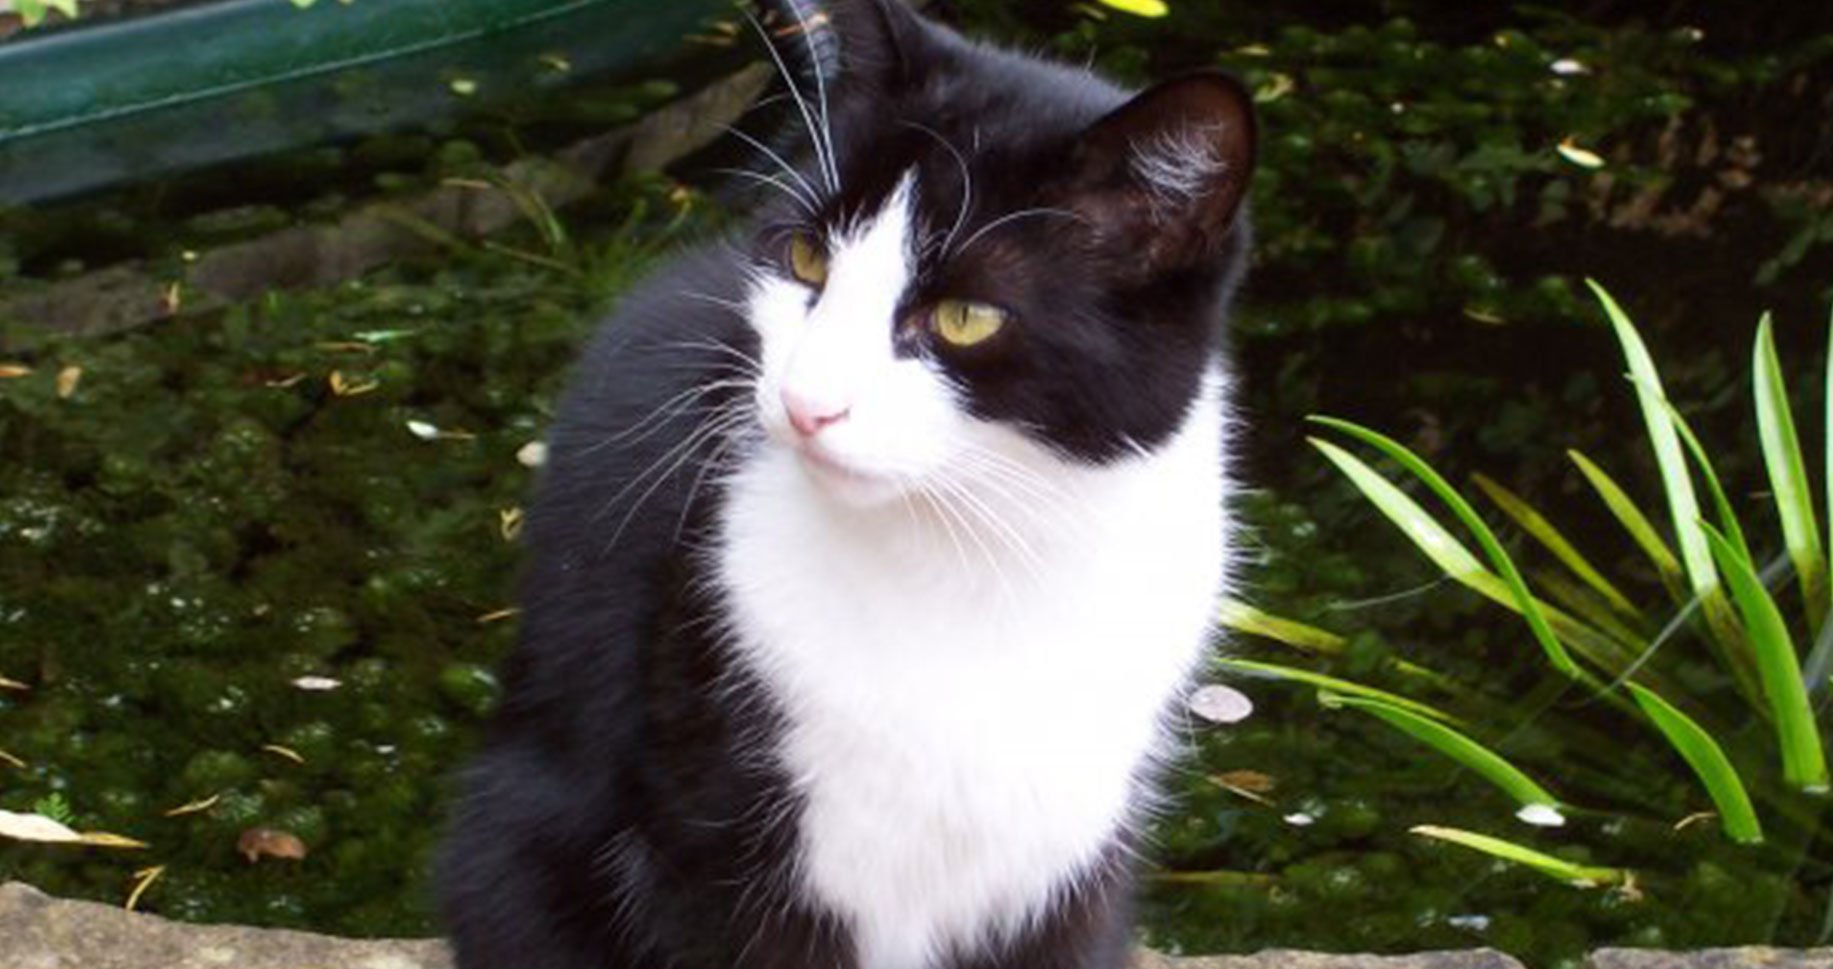 Image of a black and white cat sitting by a pond in a garden